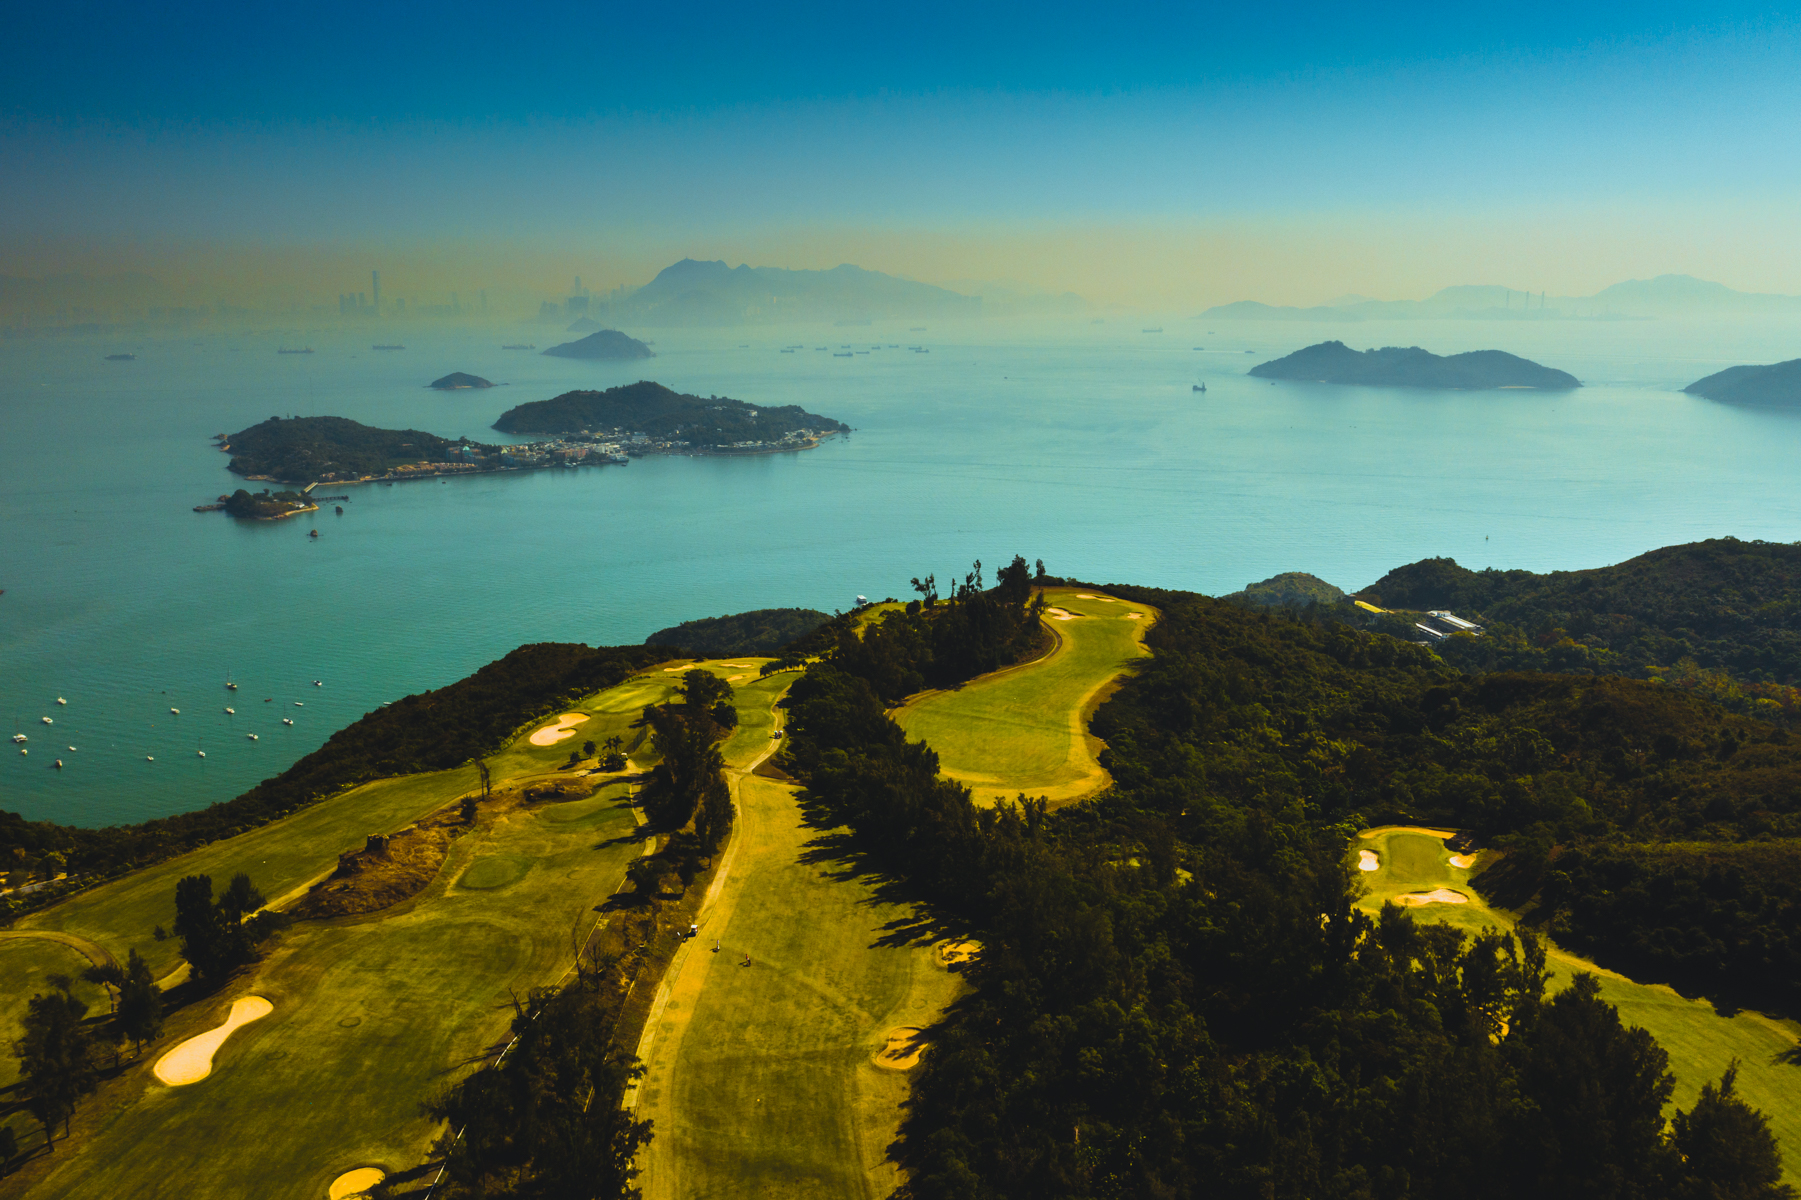 Looking over the fairways to Hong Kong Island.